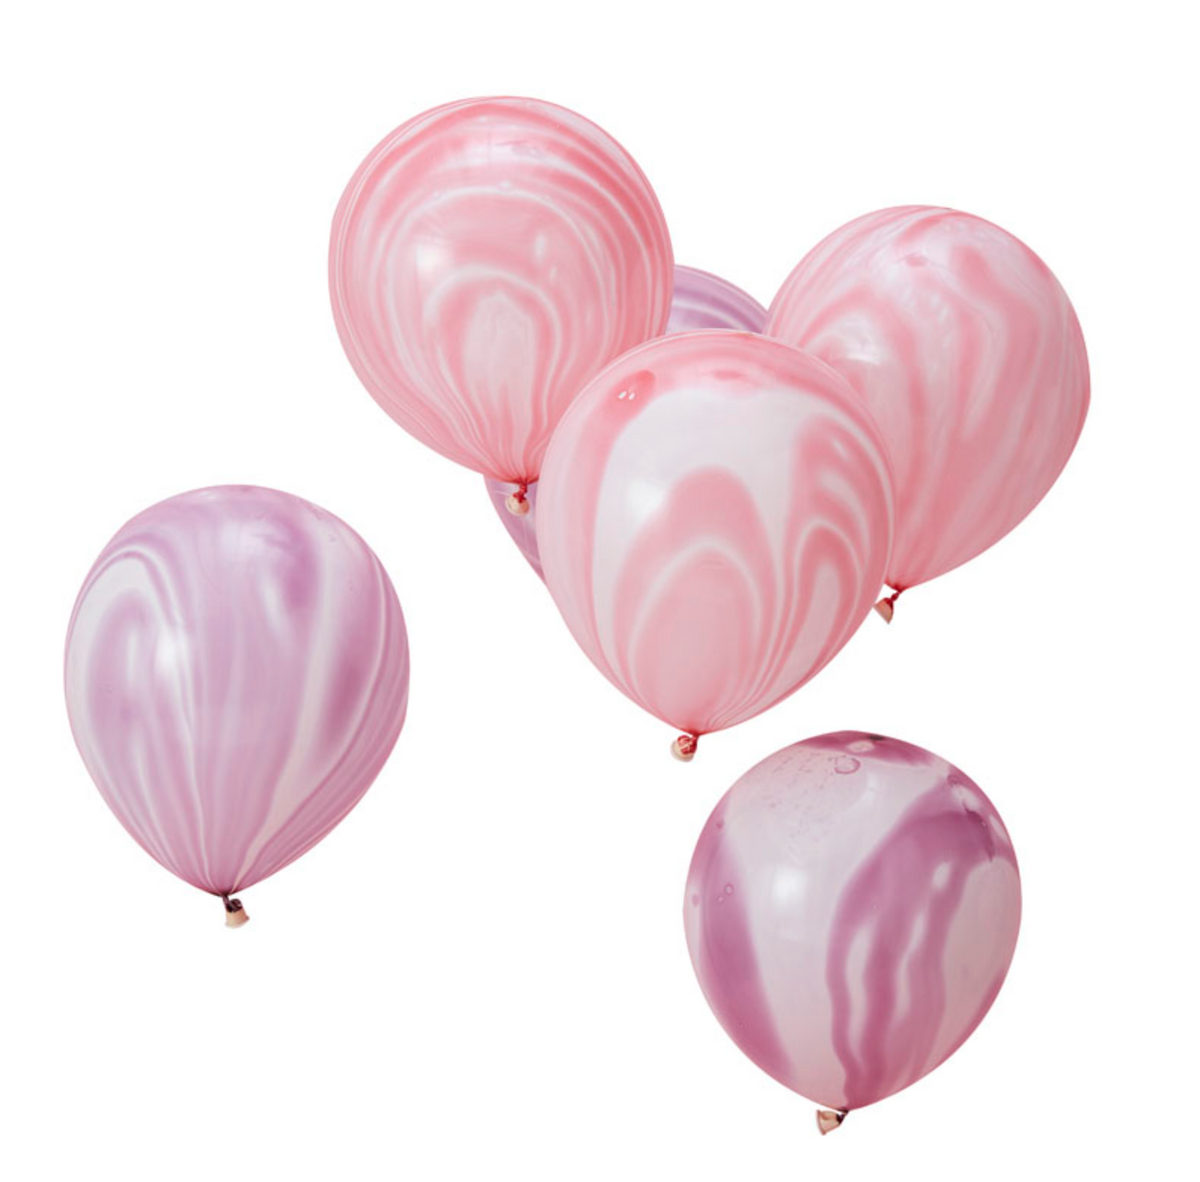 Make a Wish Unicorn Party - Pink and Purple Marble Balloons (10 pk)